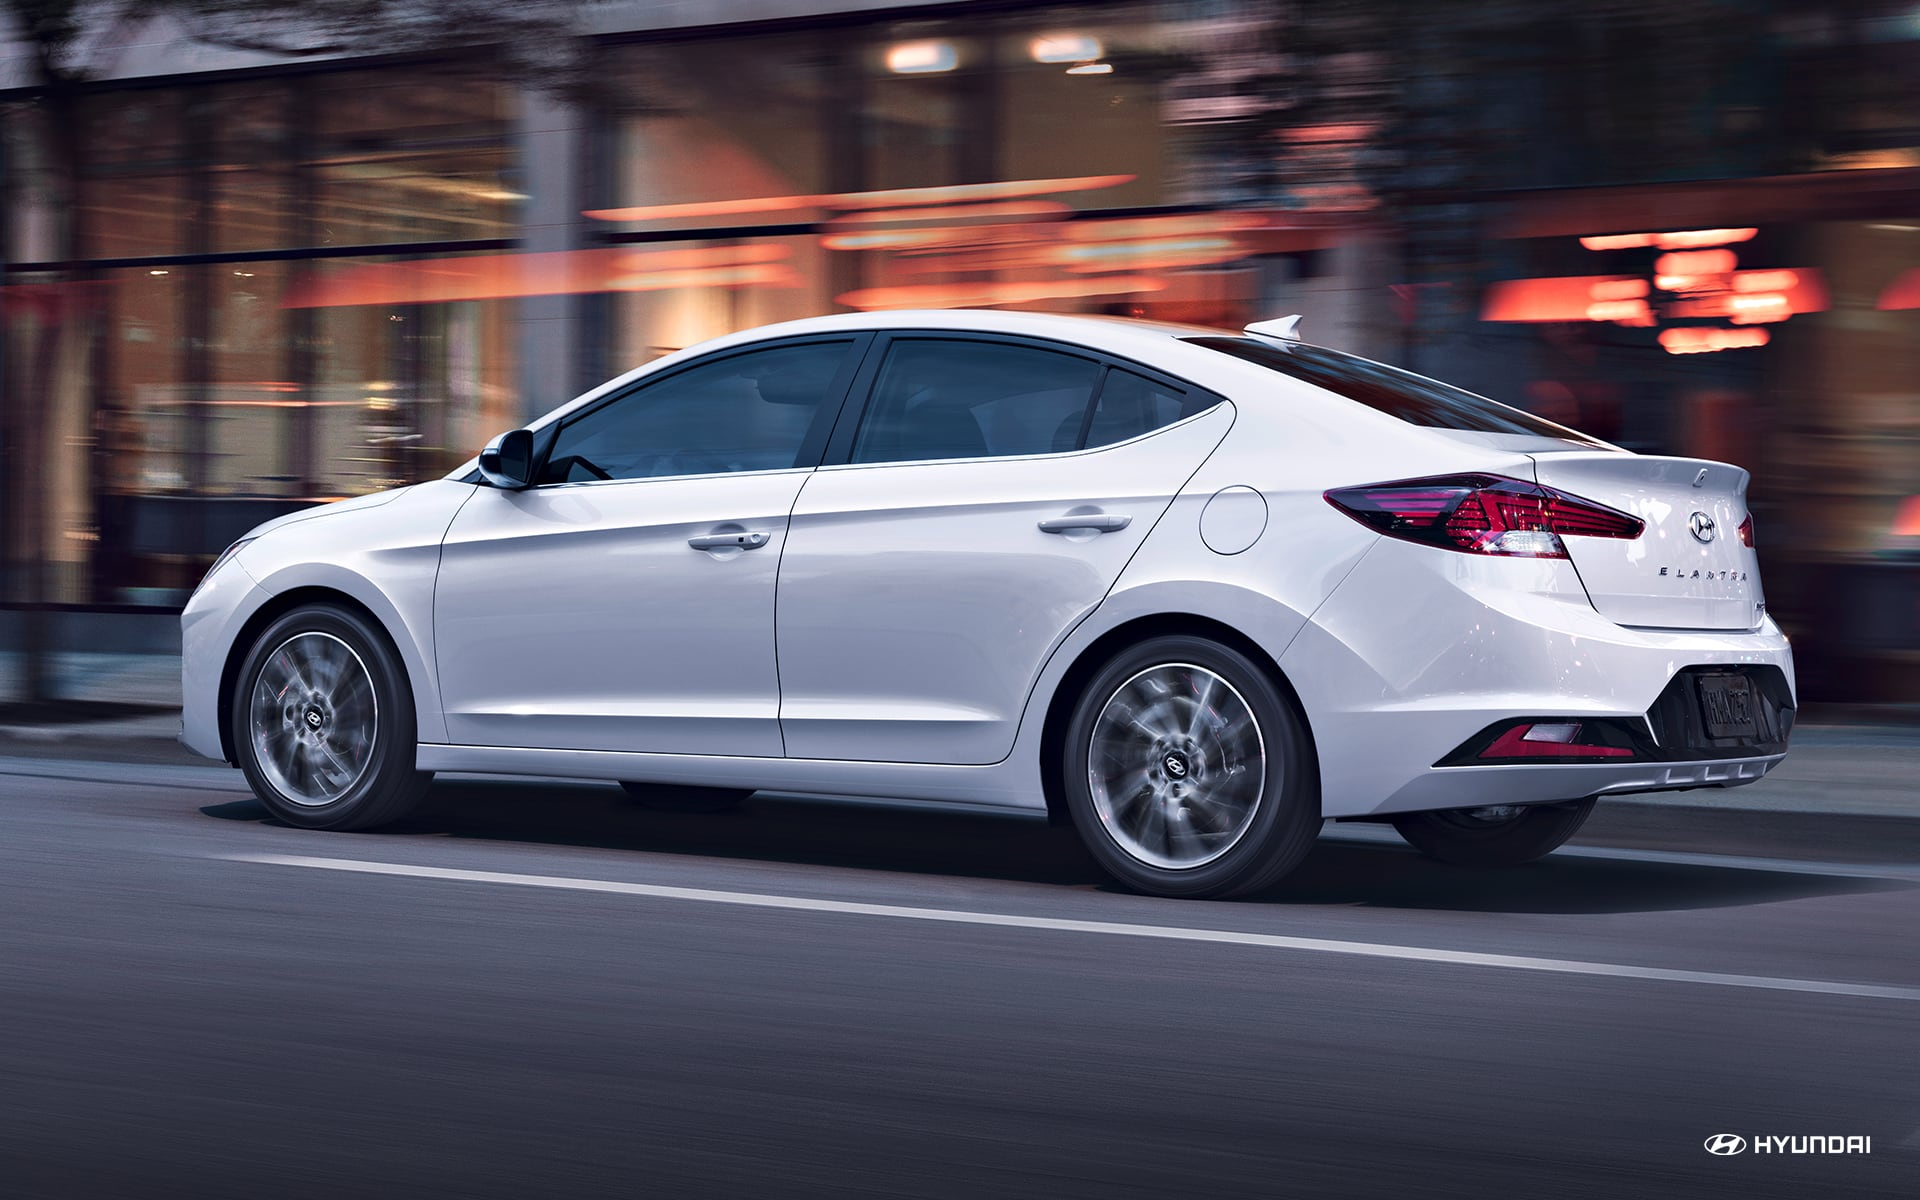 2019 Hyundai Elantra vs Ford Fusion Performance near Bolingbrook, IL